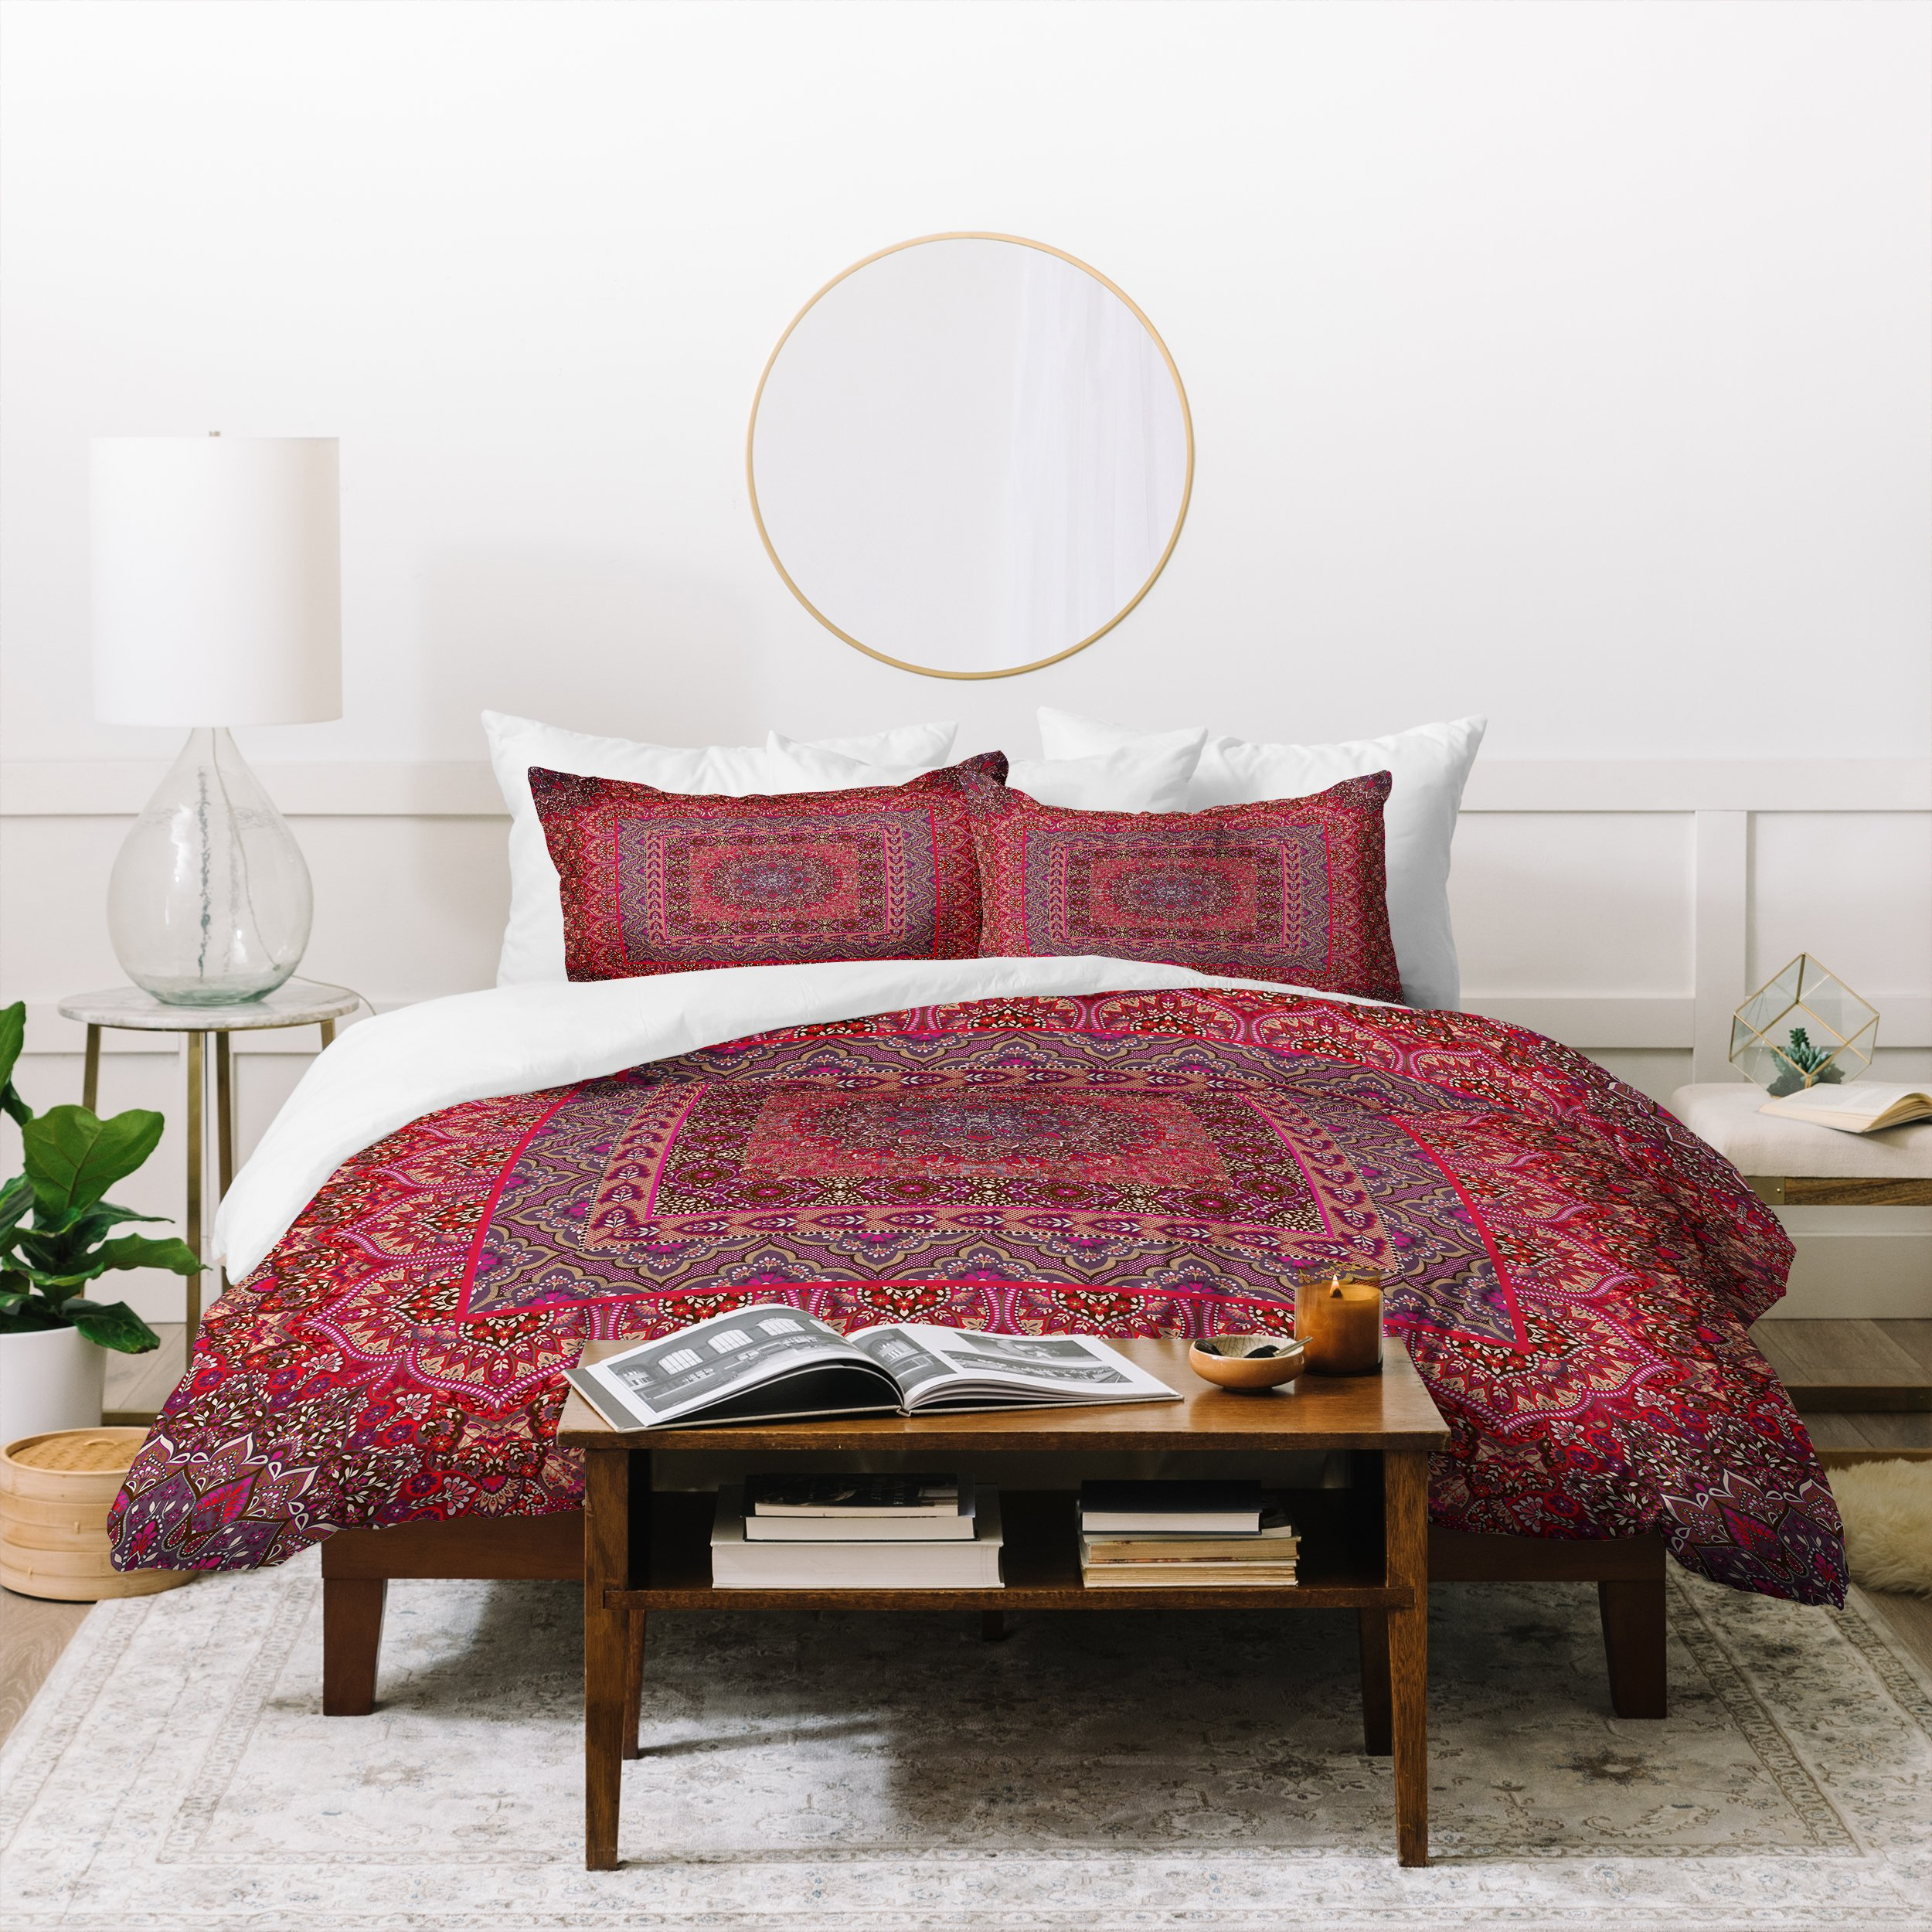 Image of Aimee St Hill Farah Squared Red Duvet Cover